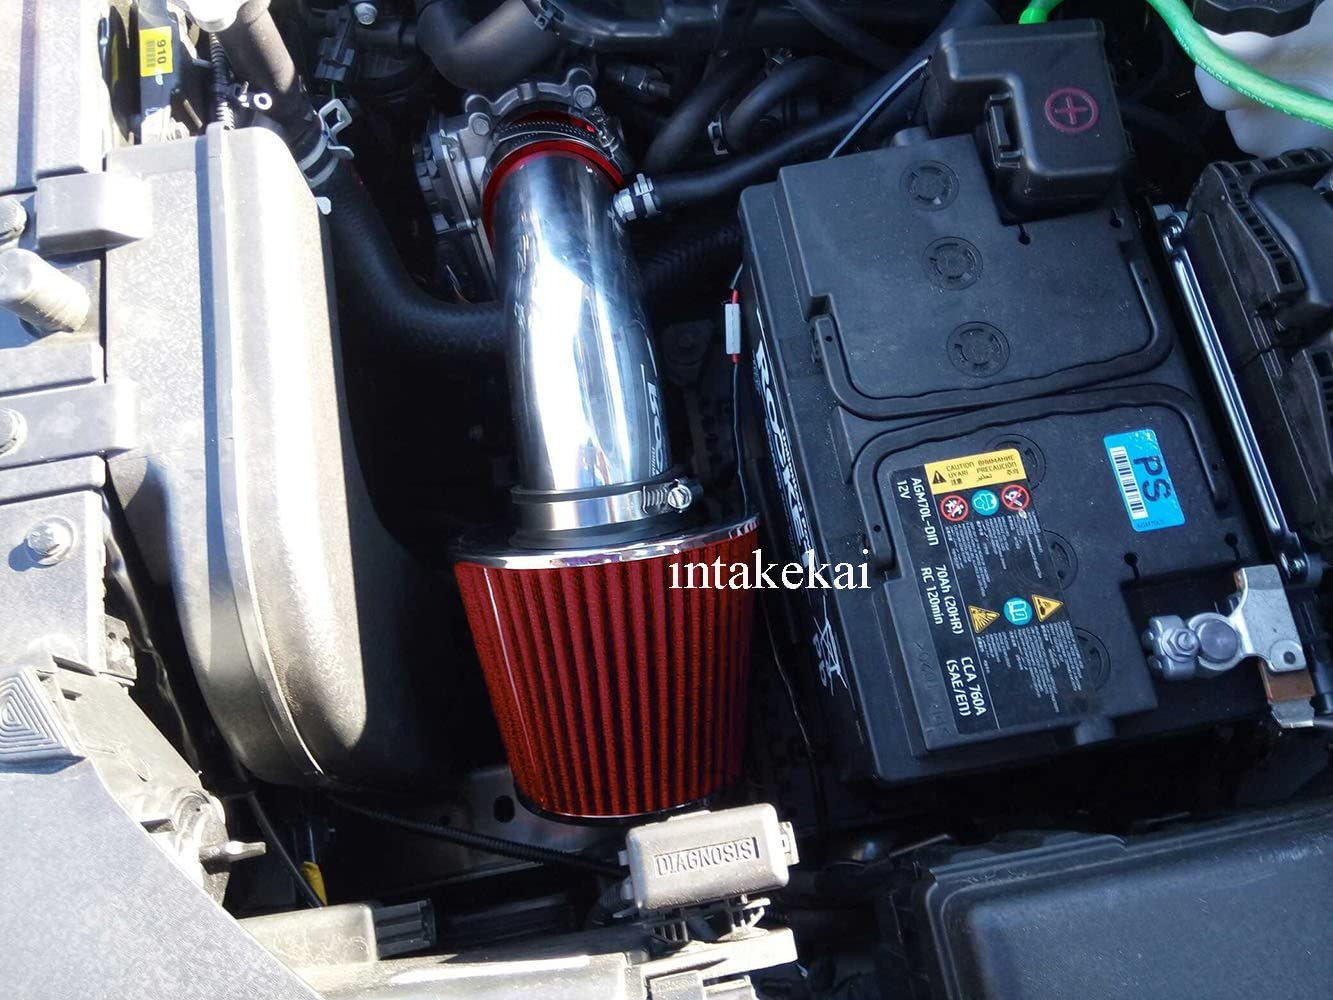 RED AIR INTAKE KIT SYSTEM for 2011-2017 HYUNDAI ELANTRA 2.0 2.0L L4 ENGINE